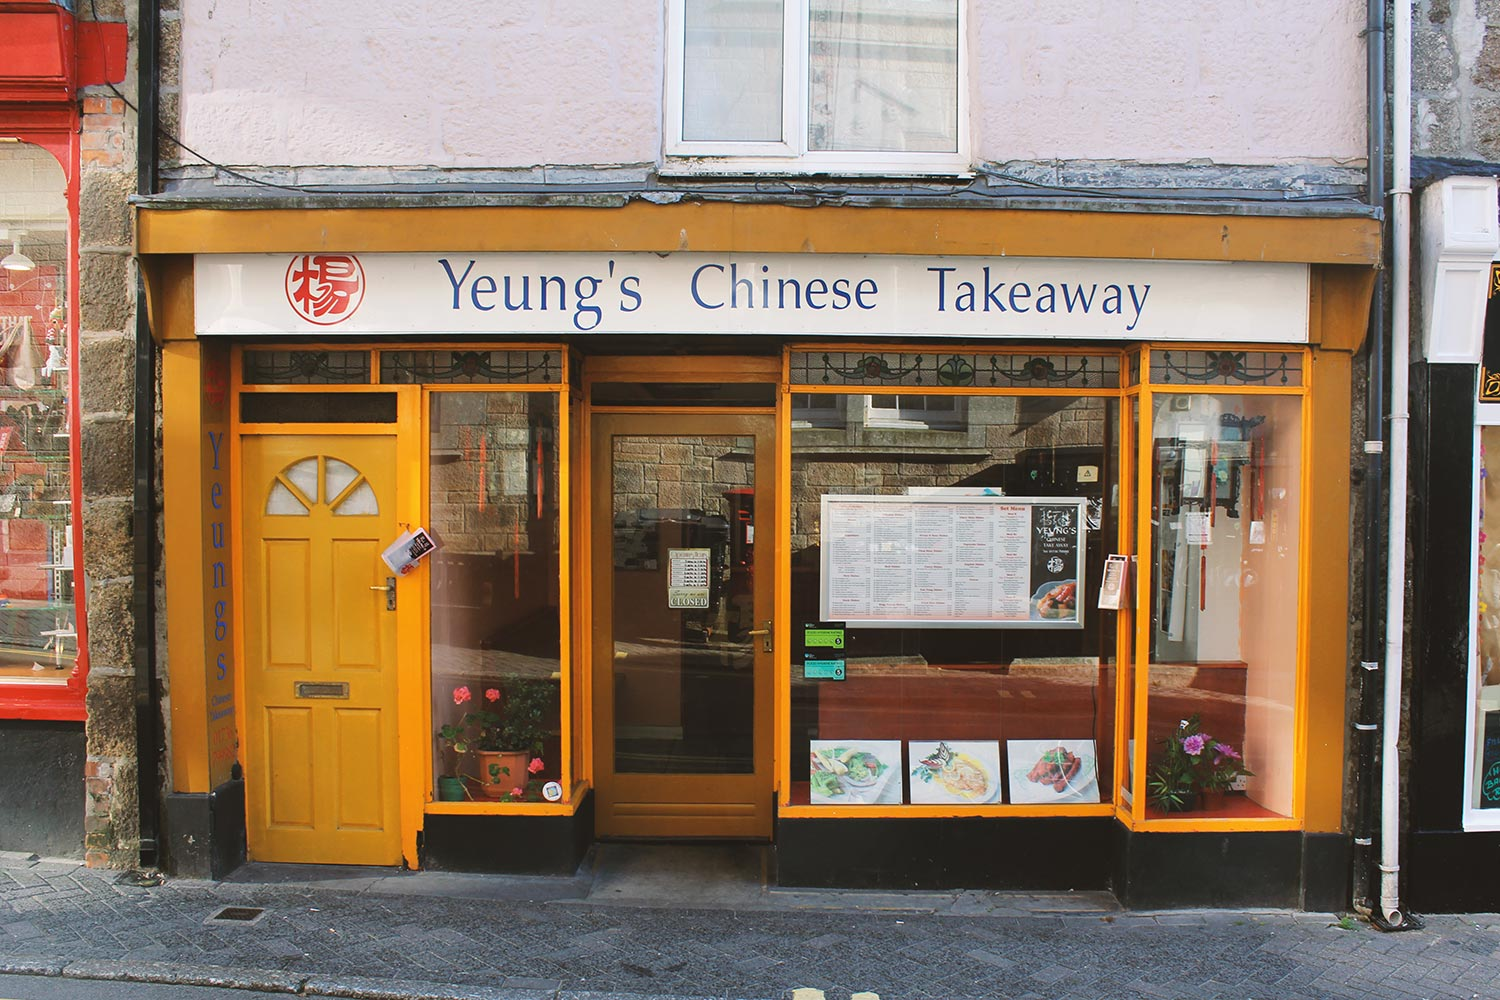 Yeungs Chinese Takeaway exterior